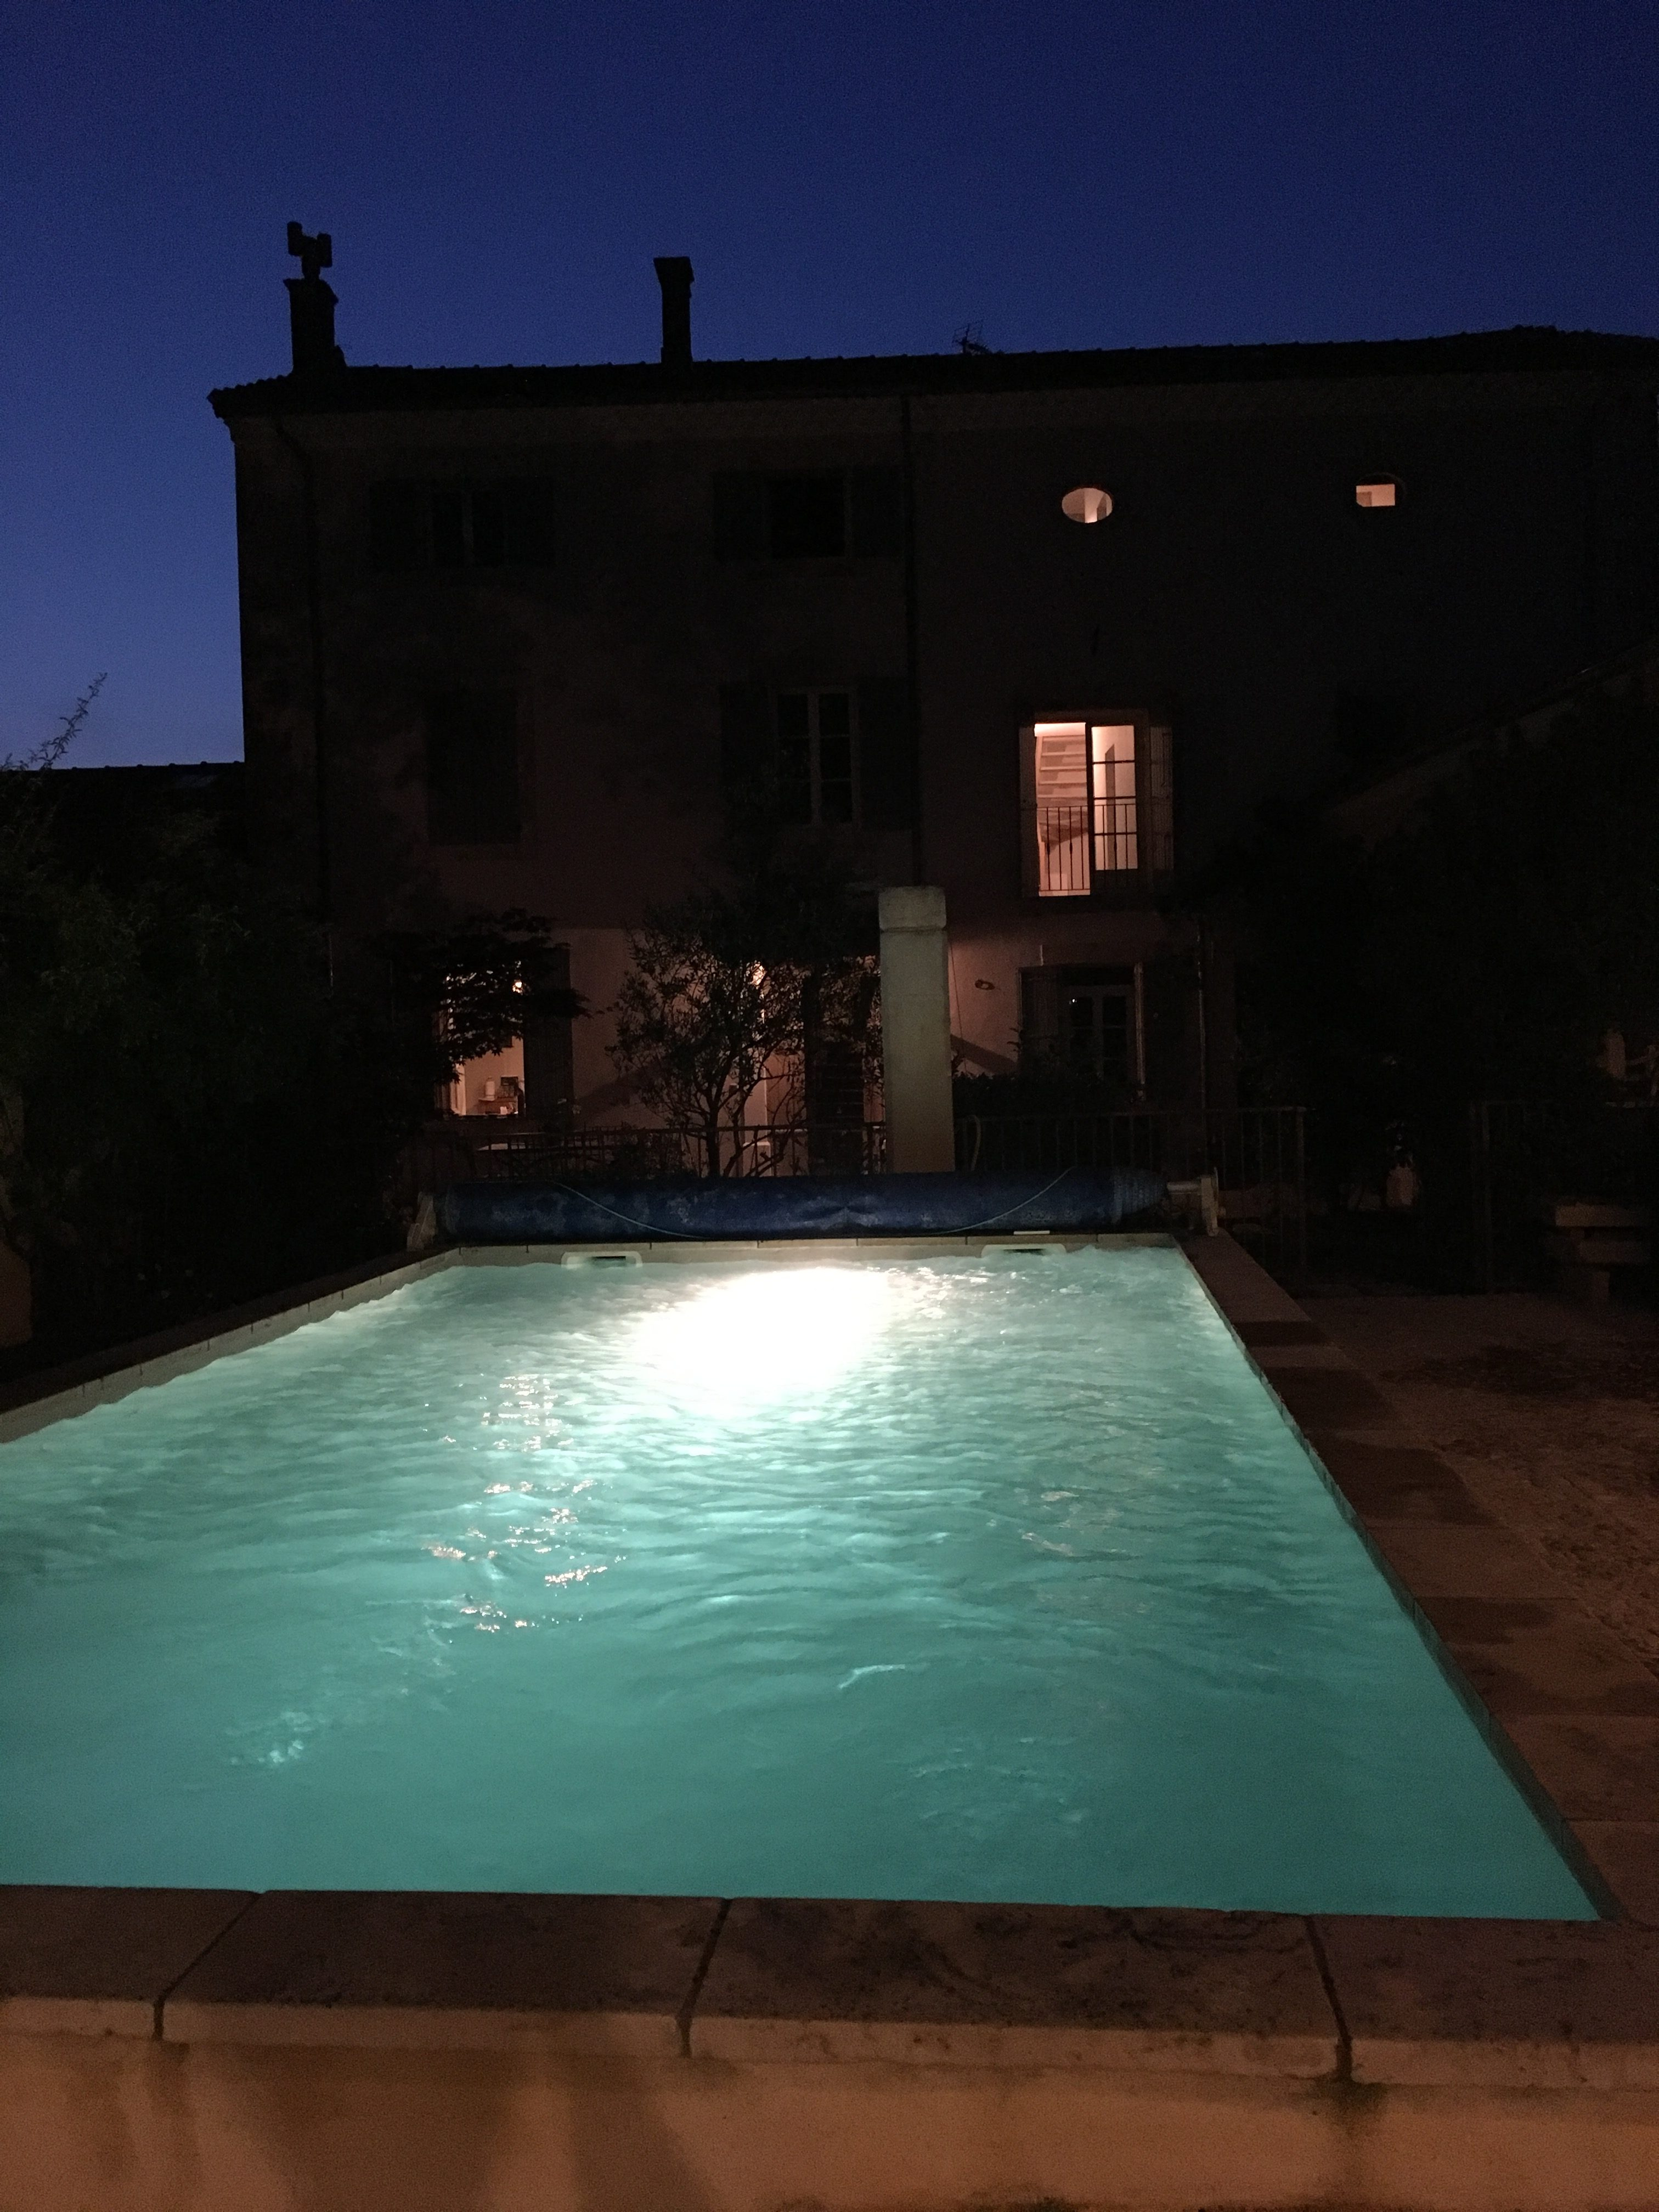 Swimming pool - La Bastide des Songes - Bed and breakfast Luberon - Vaucluse - Robion - Gordes - Cavaillon - Avignon